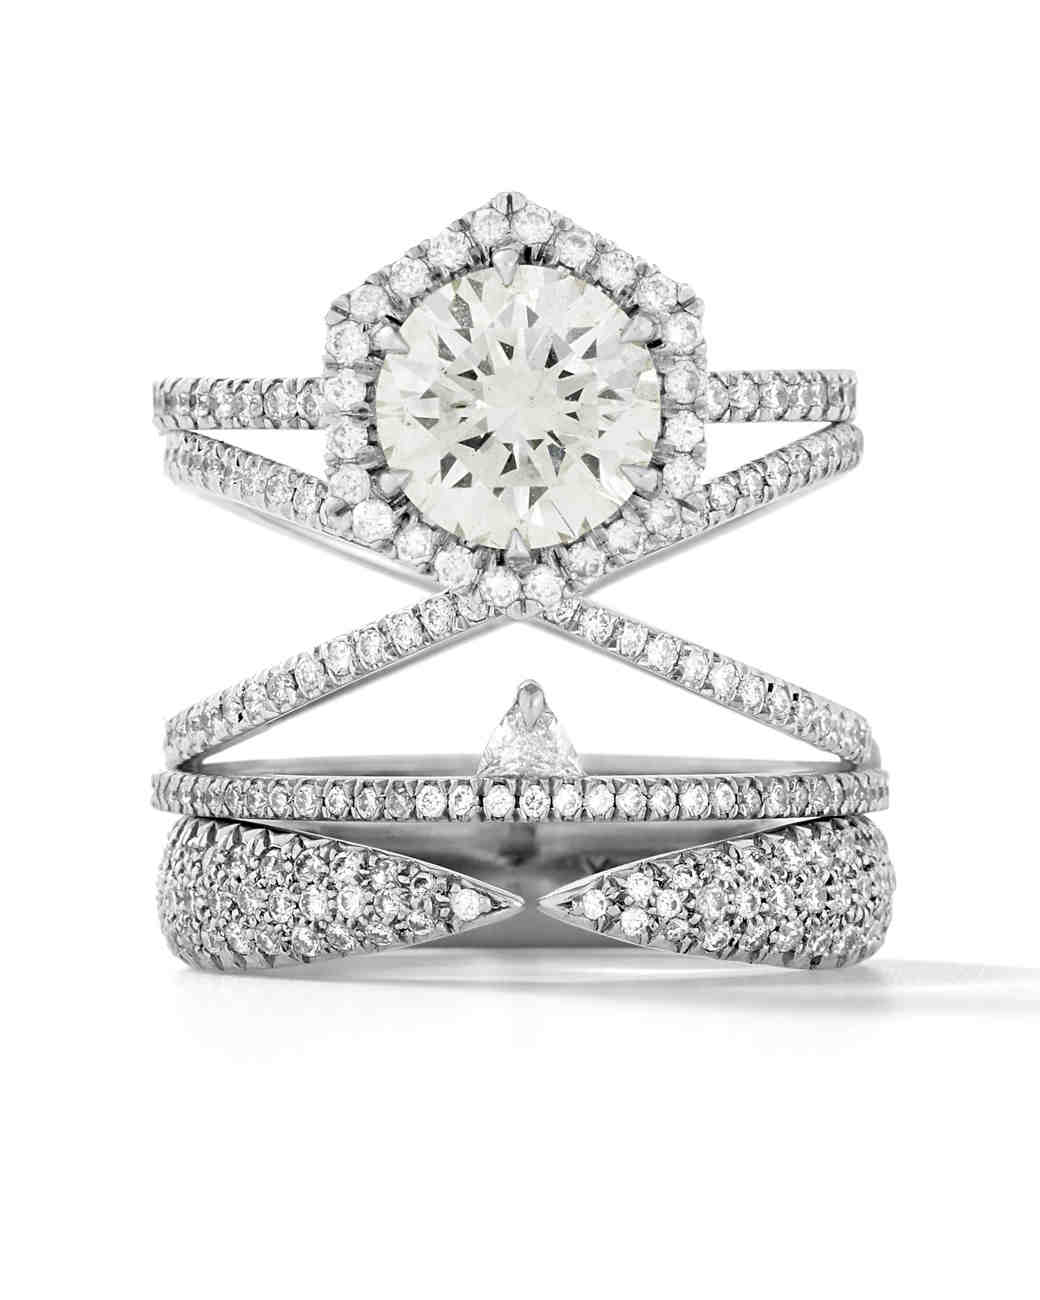 stacked engagement rings youll love martha stewart weddings - Stacked Wedding Rings